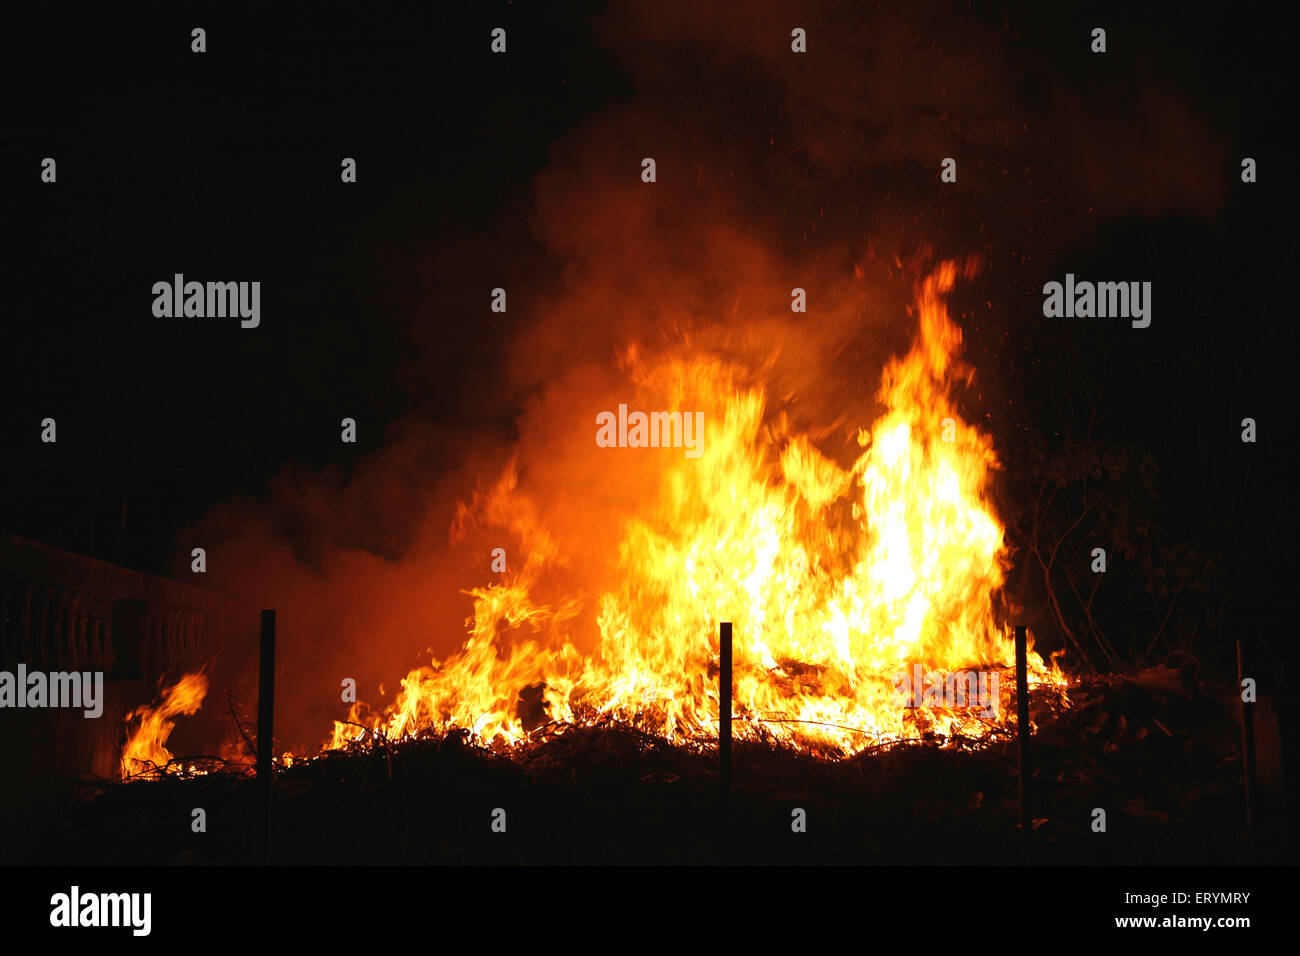 Garbage on fire - Stock Image